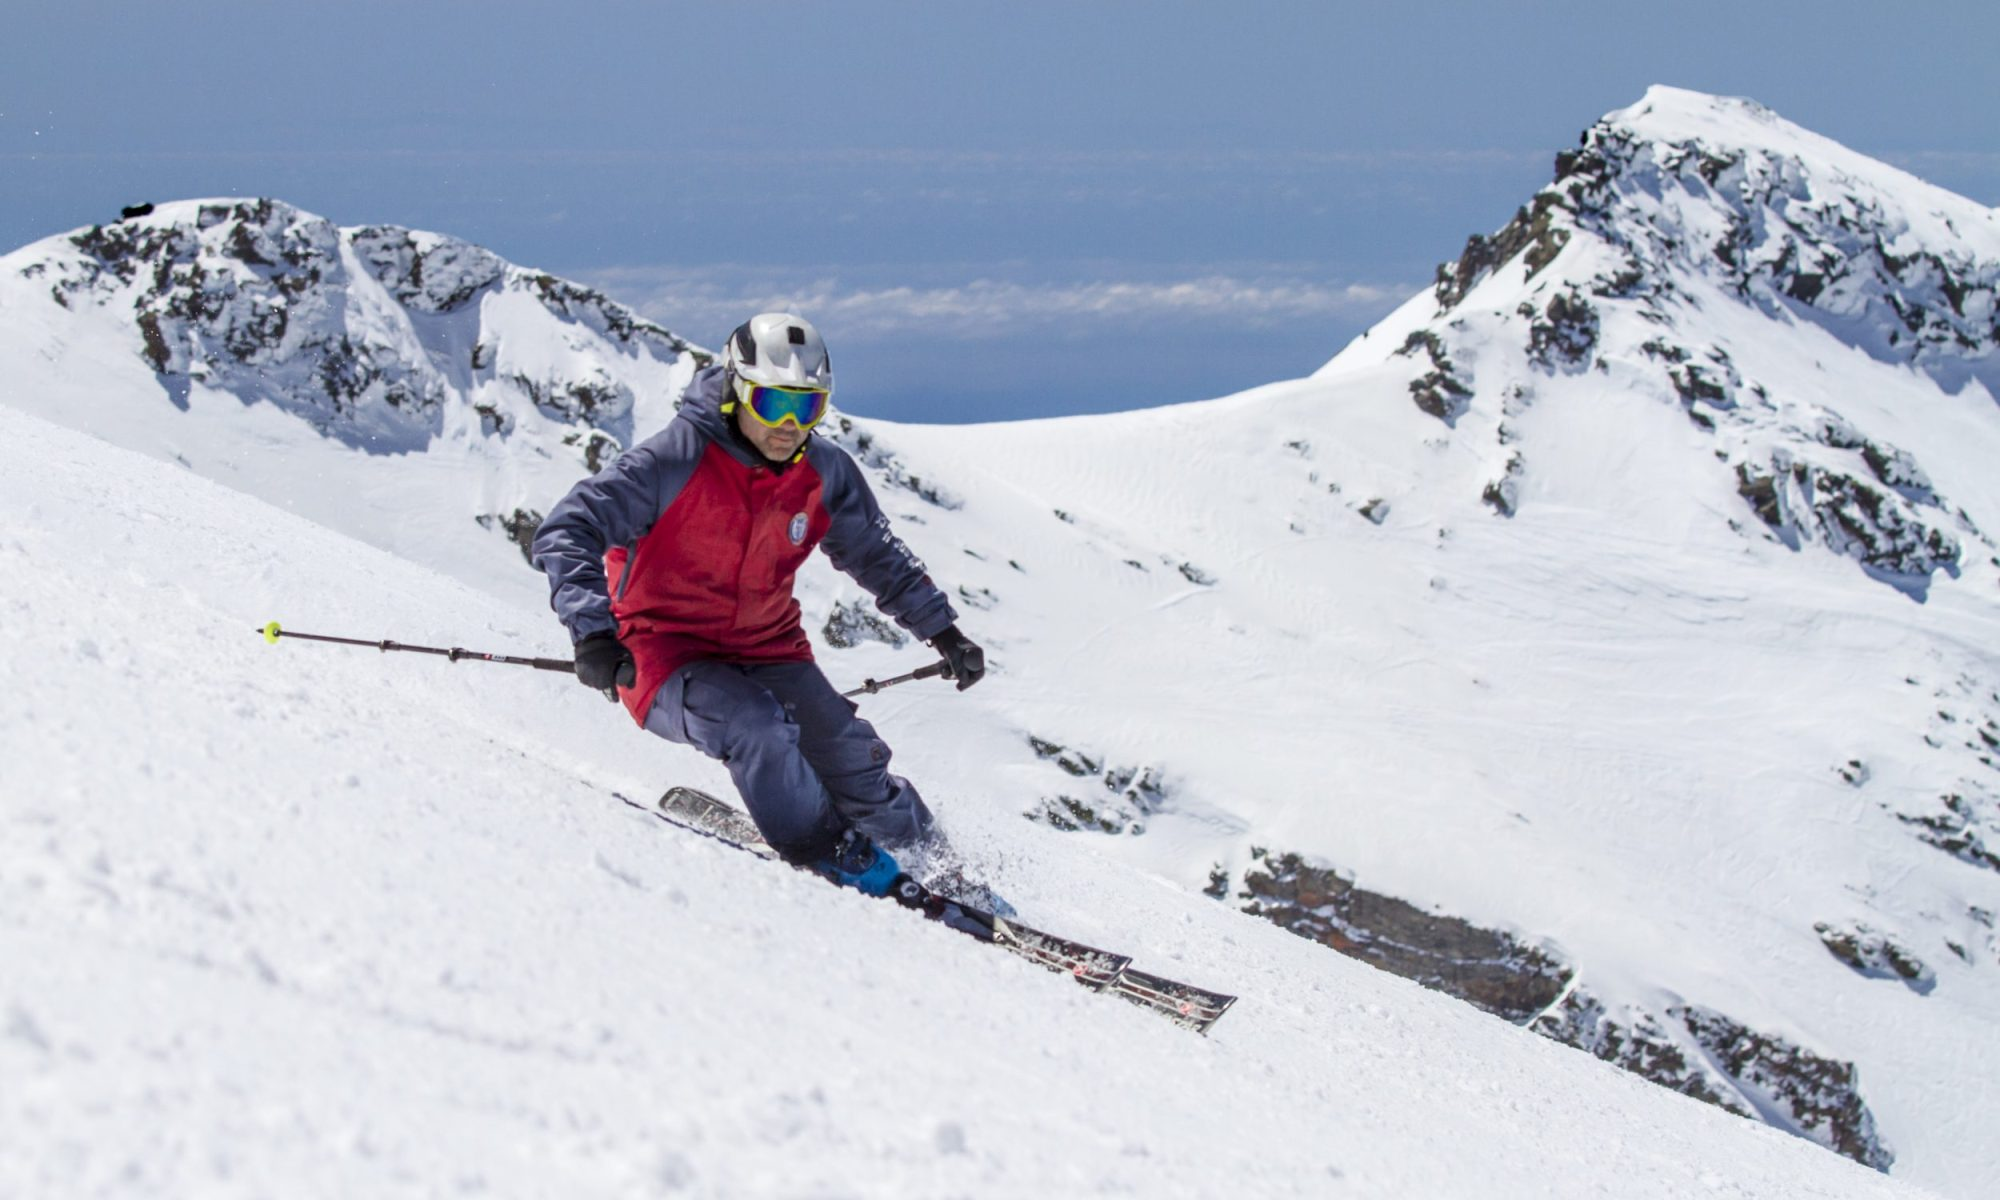 Sierra Nevada is having its pistes opened until May 6th.